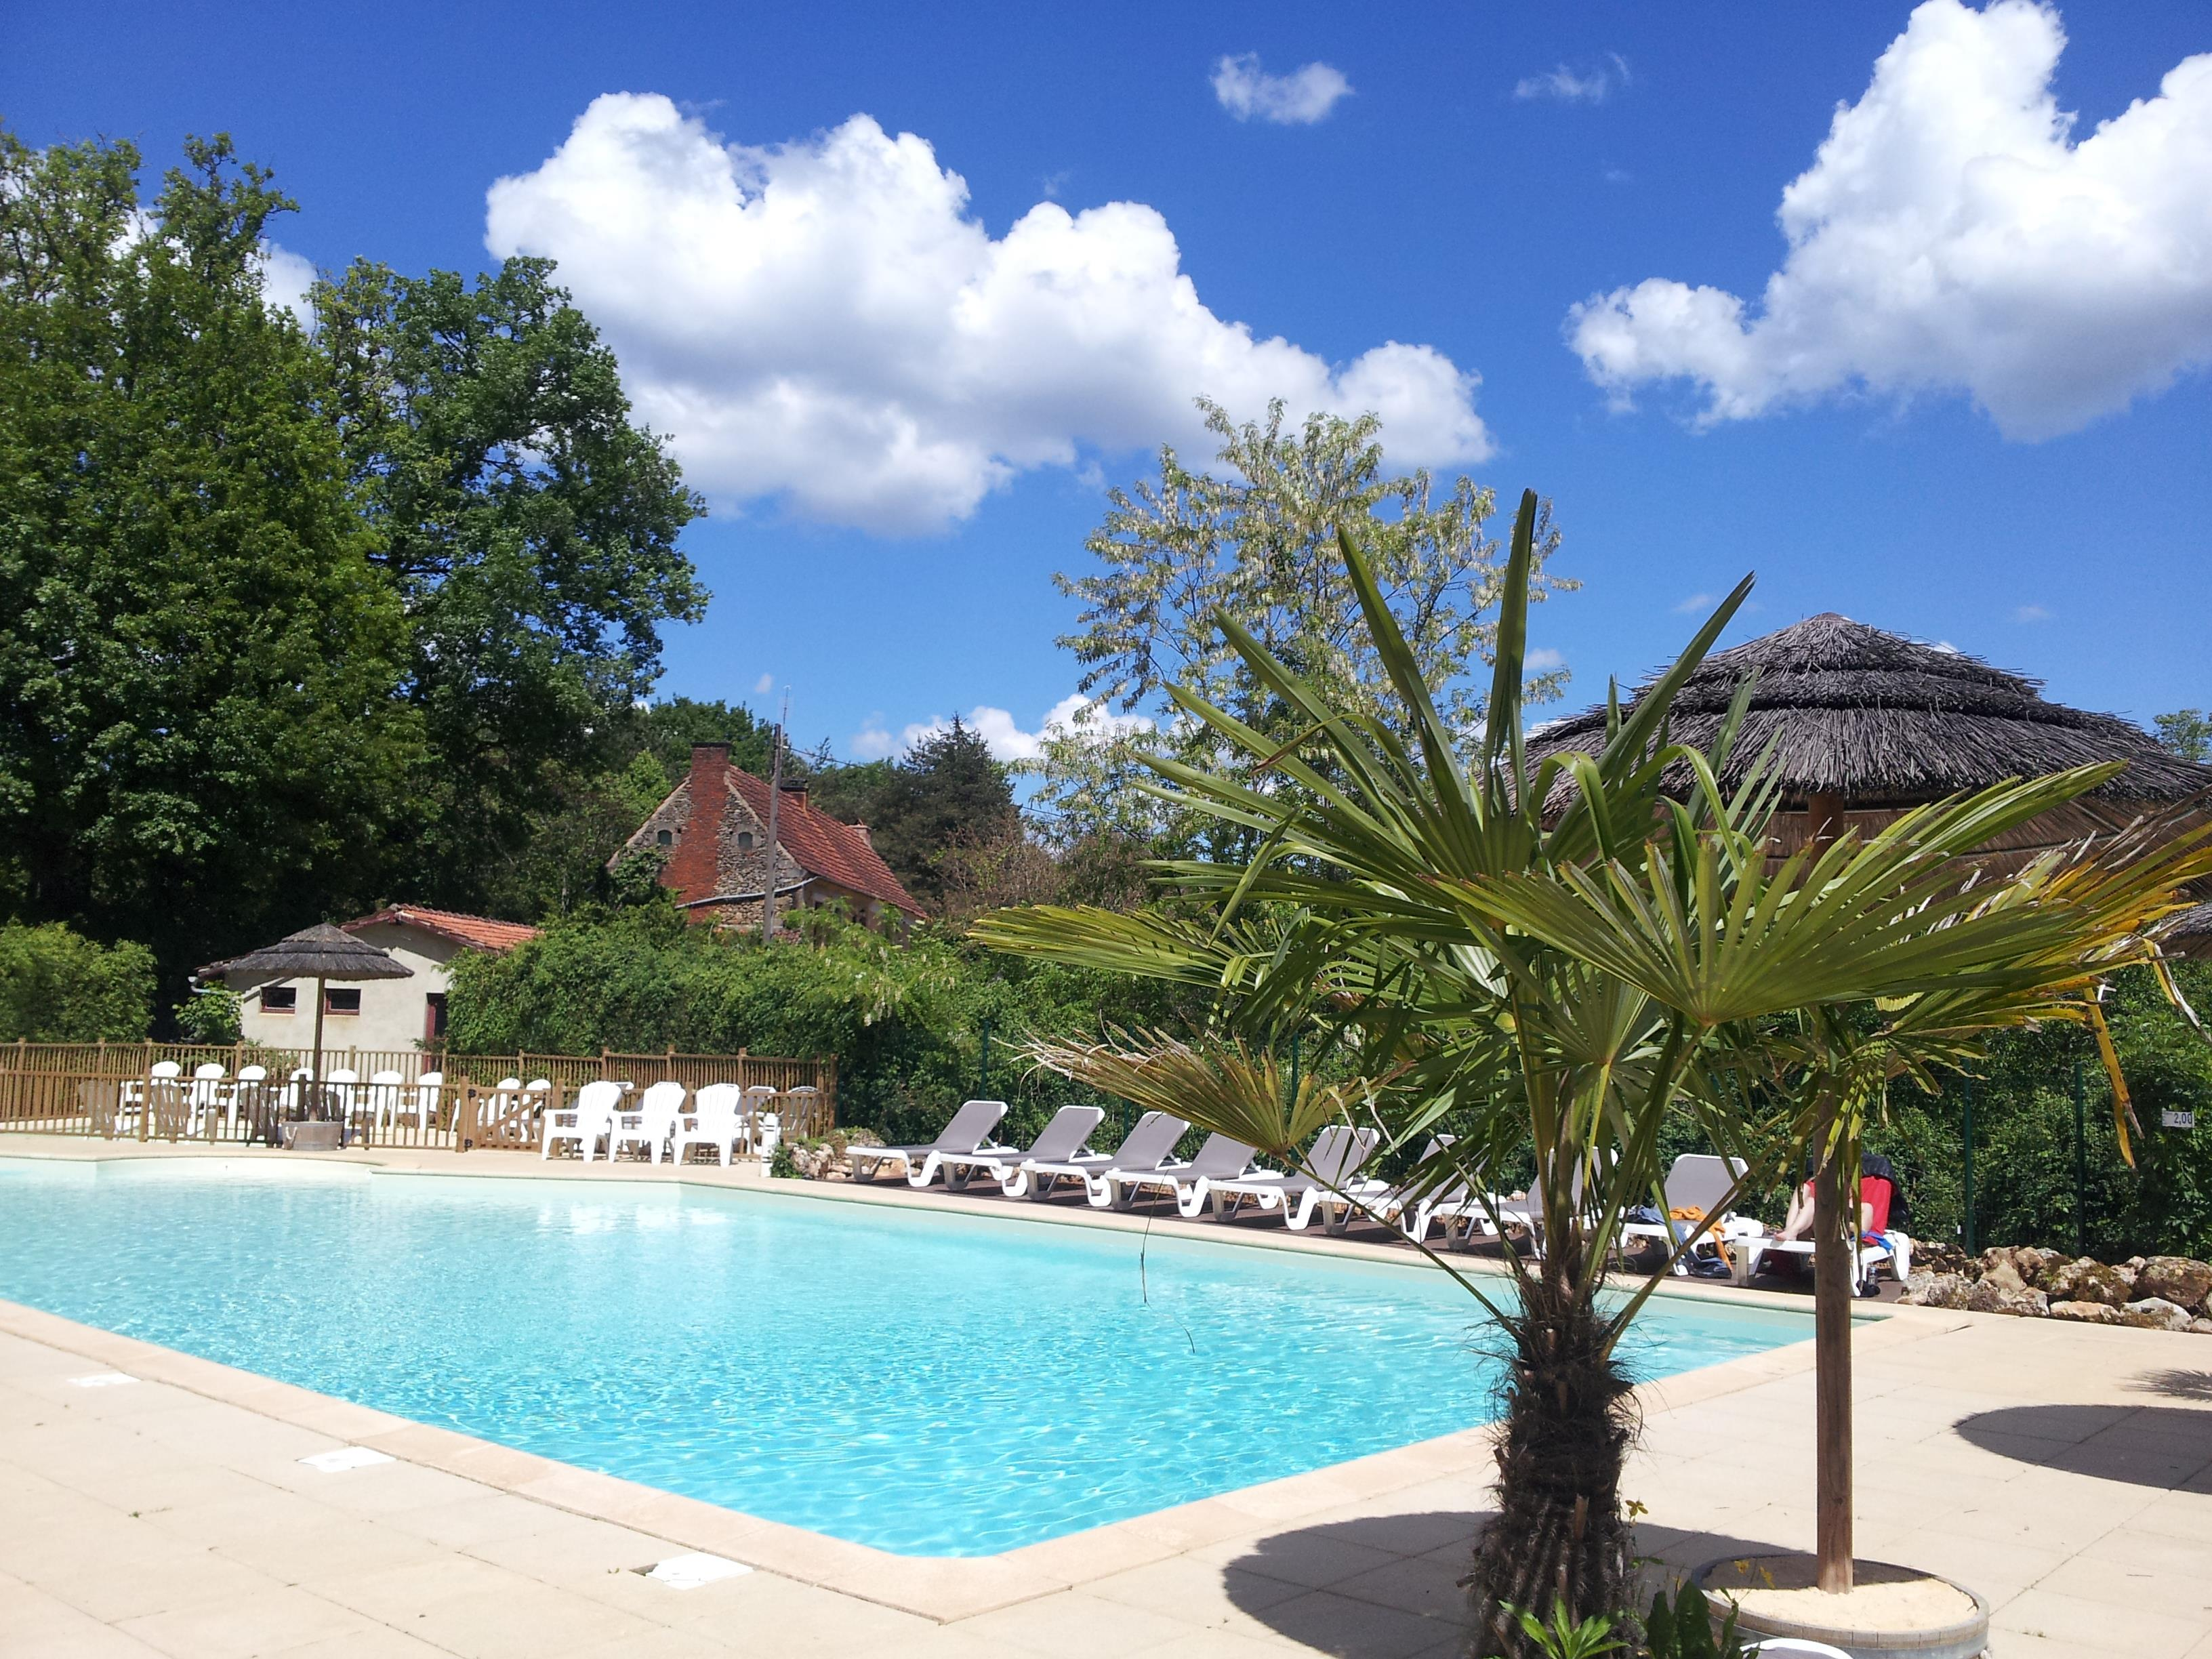 Baden Camping Le Pech Charmant - Les Eyzies